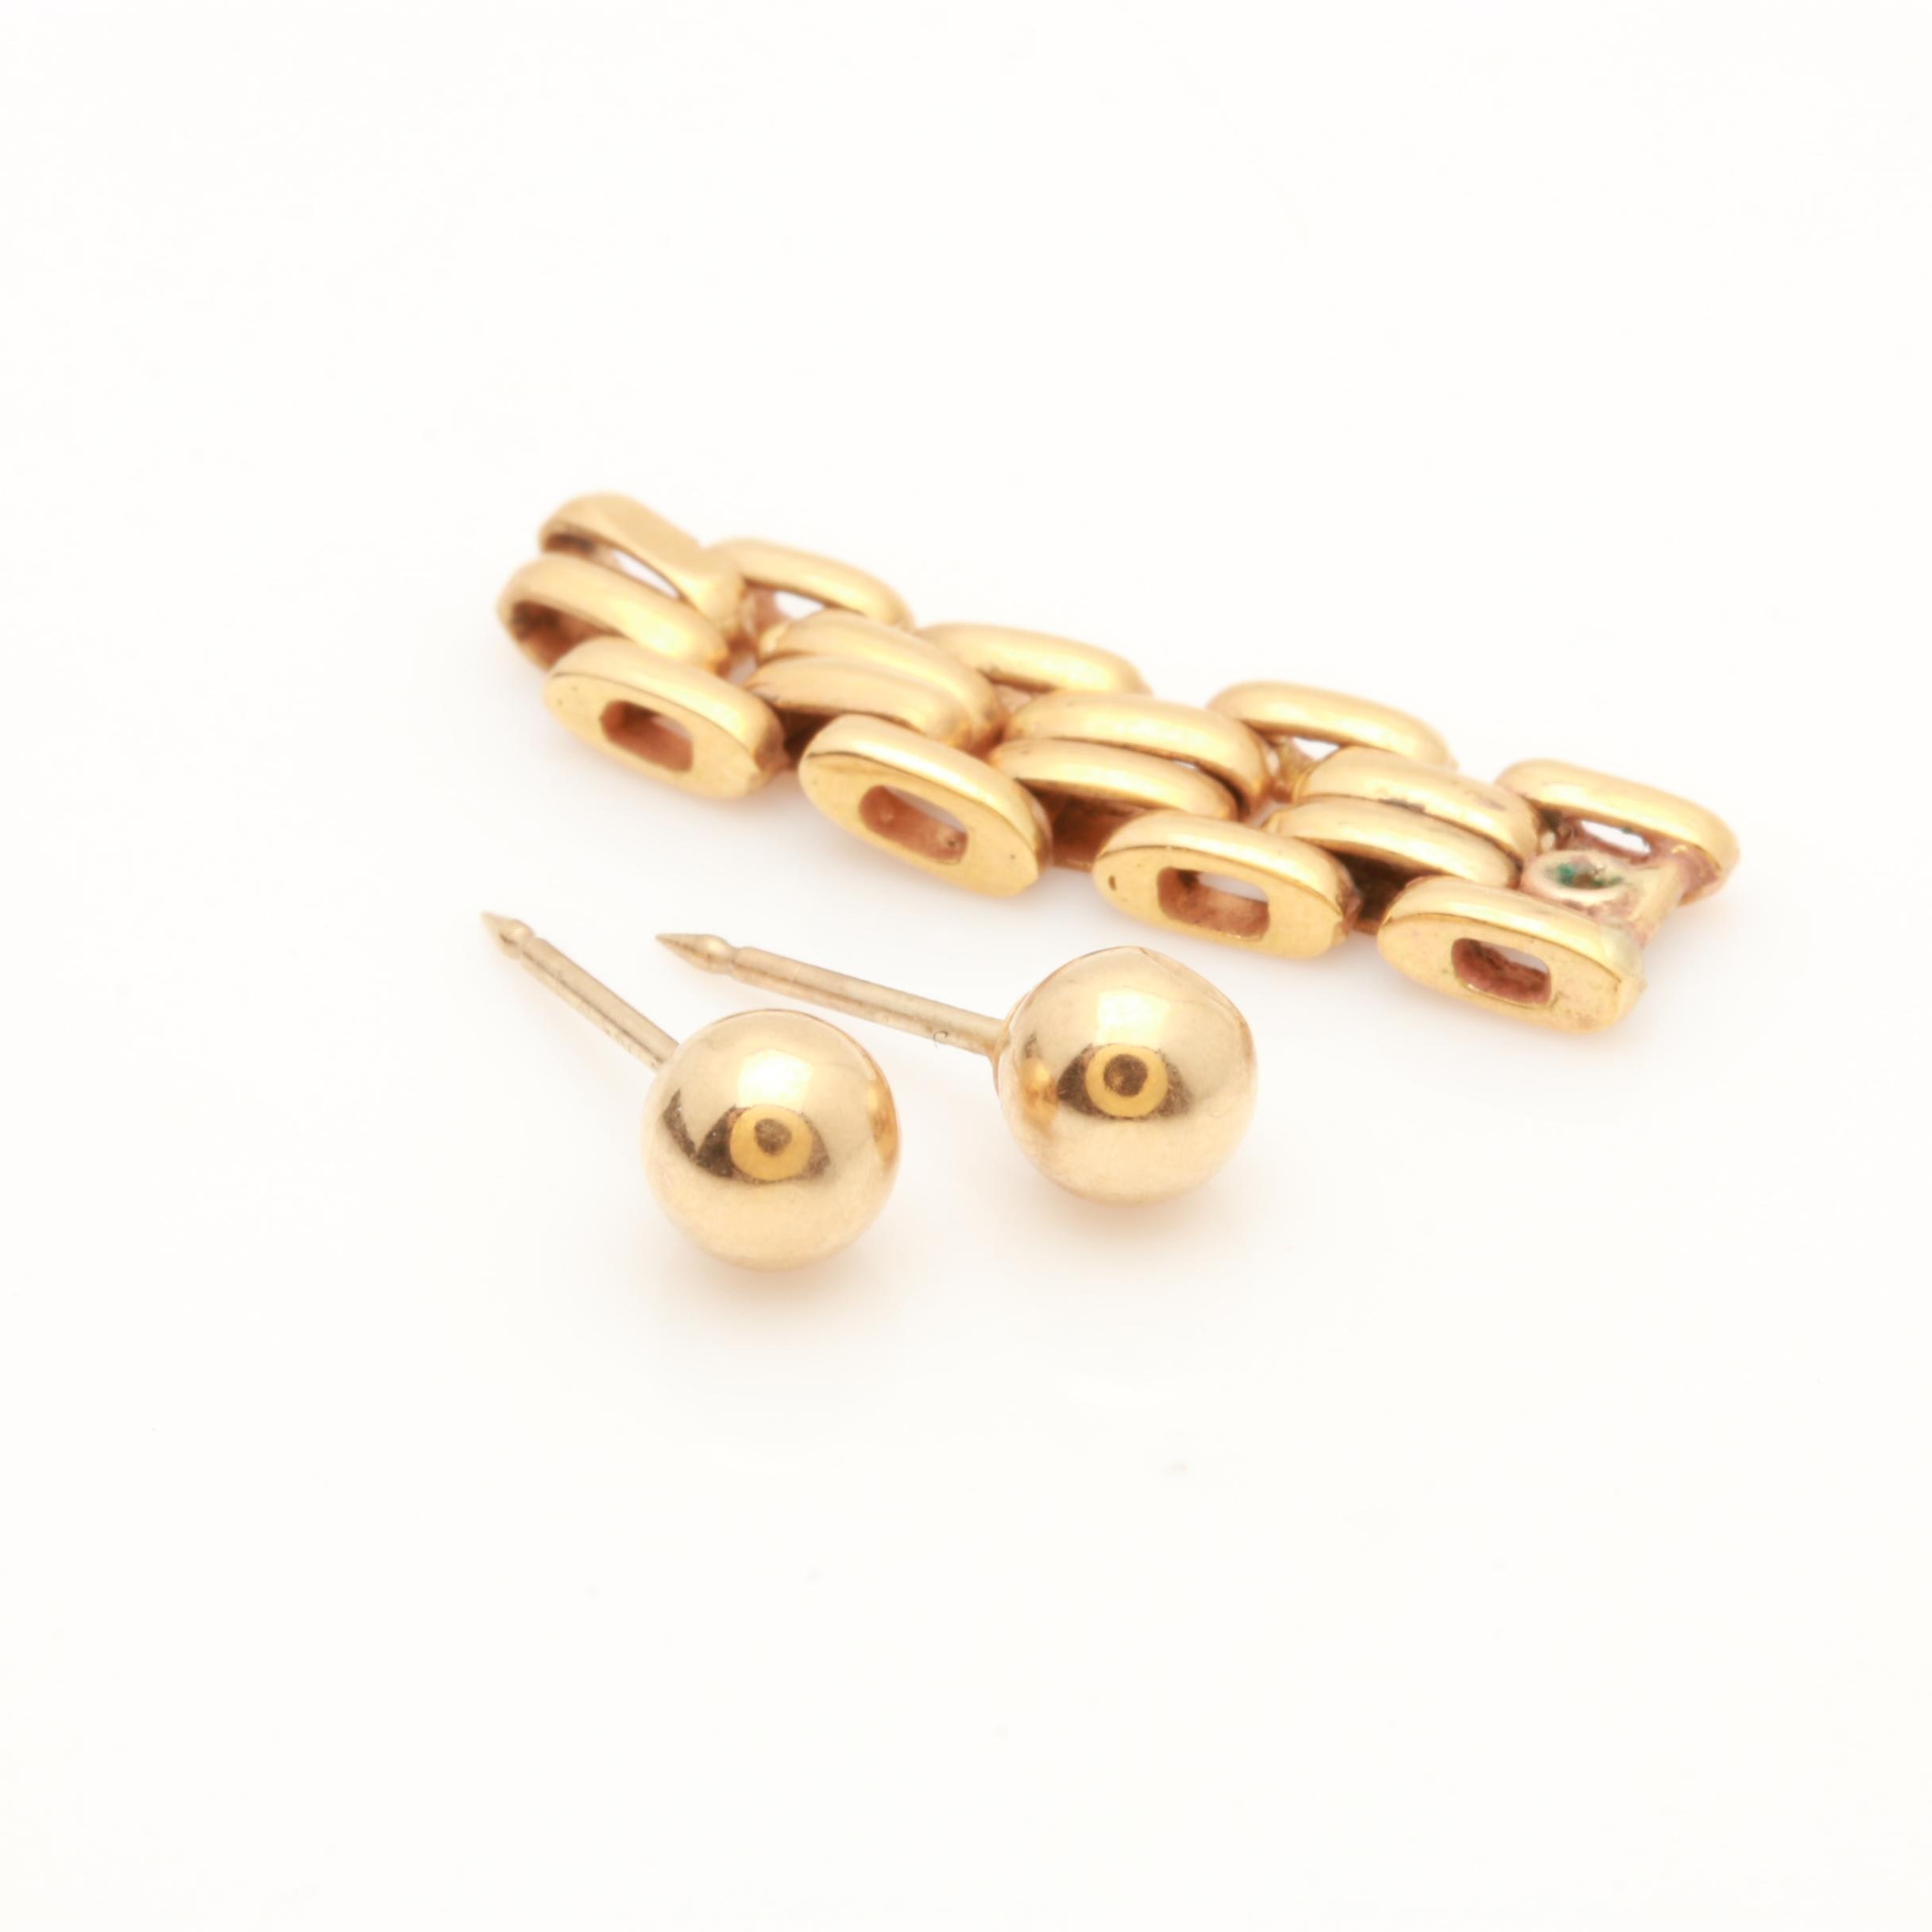 14K and 18K Yellow Gold Scrap Jewelry